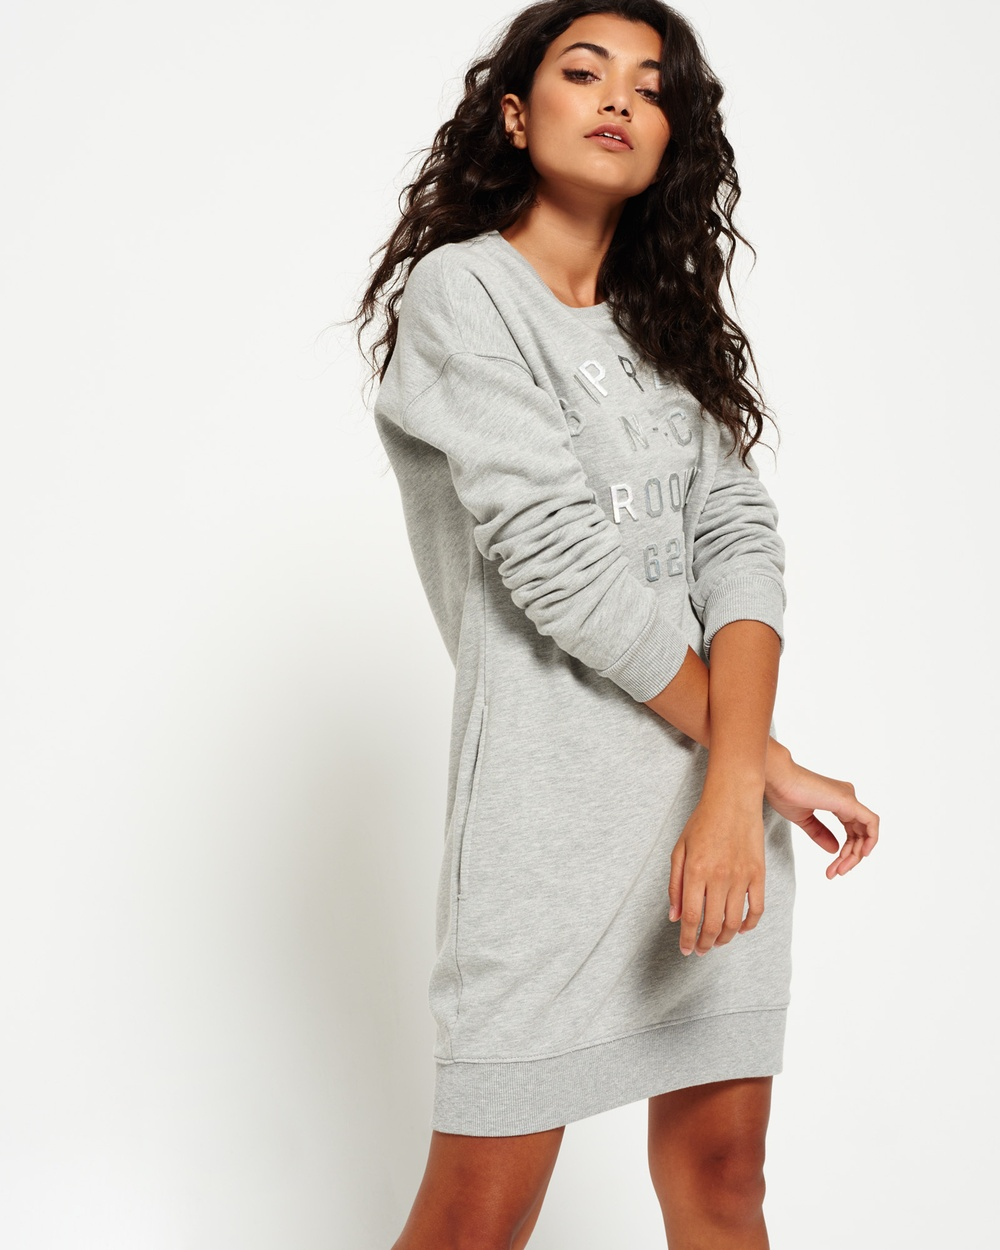 Superdry Graphic Sweat Dress Dresses Sport Code Grey Grit Graphic Sweat Dress